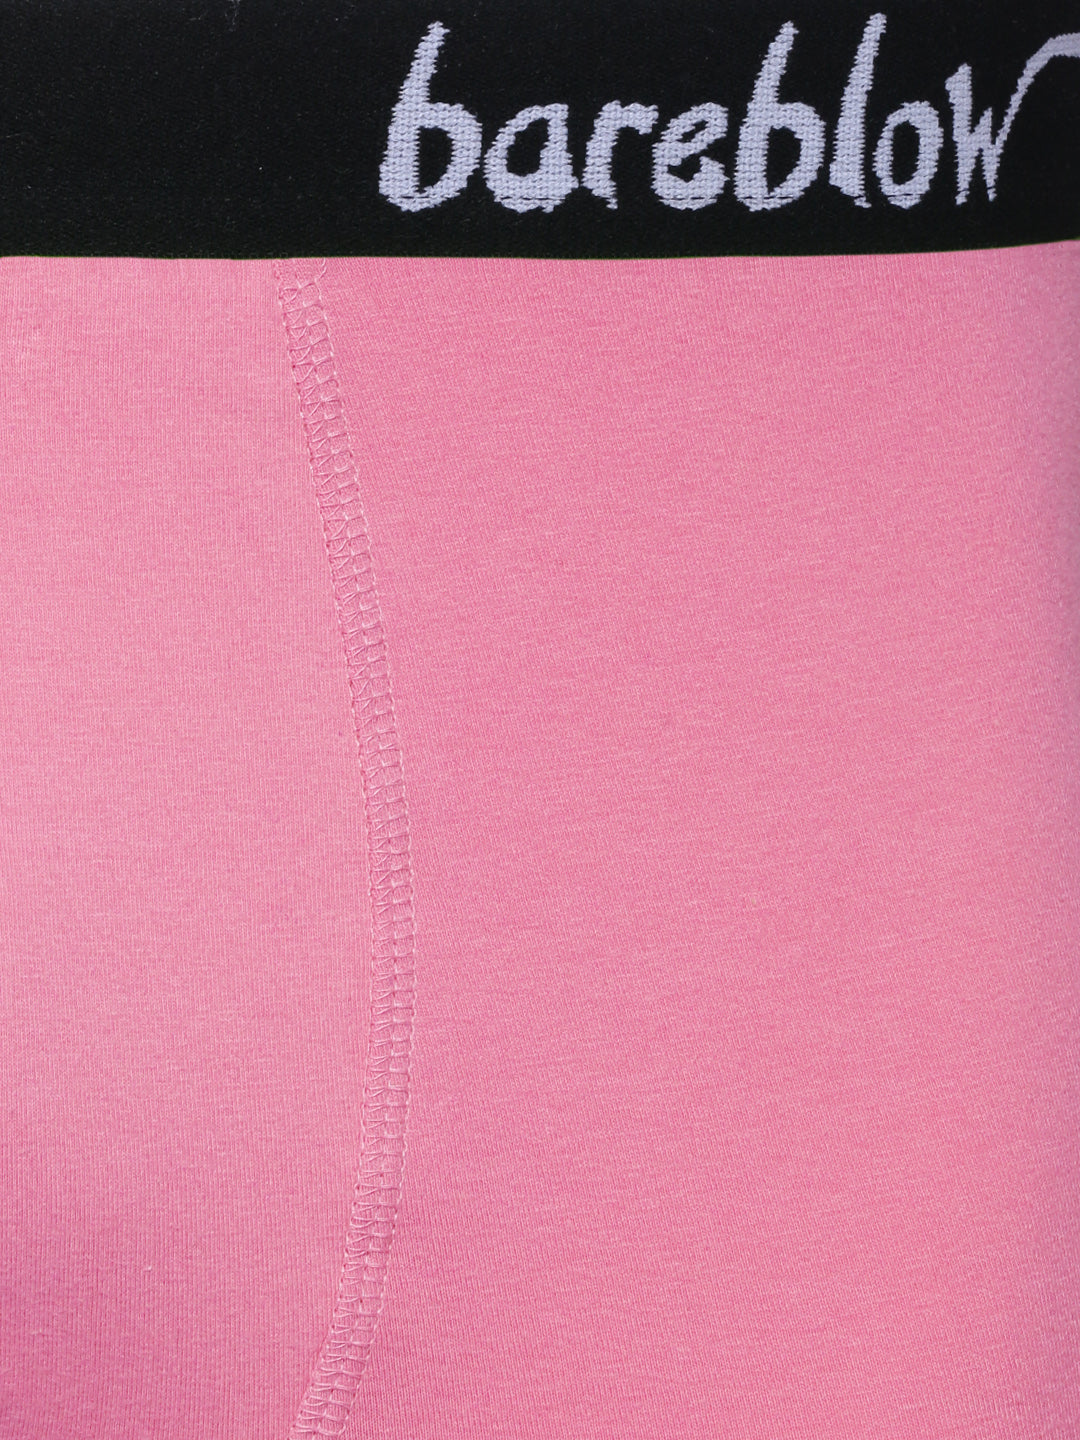 The Pink Elastic Plain Trunk